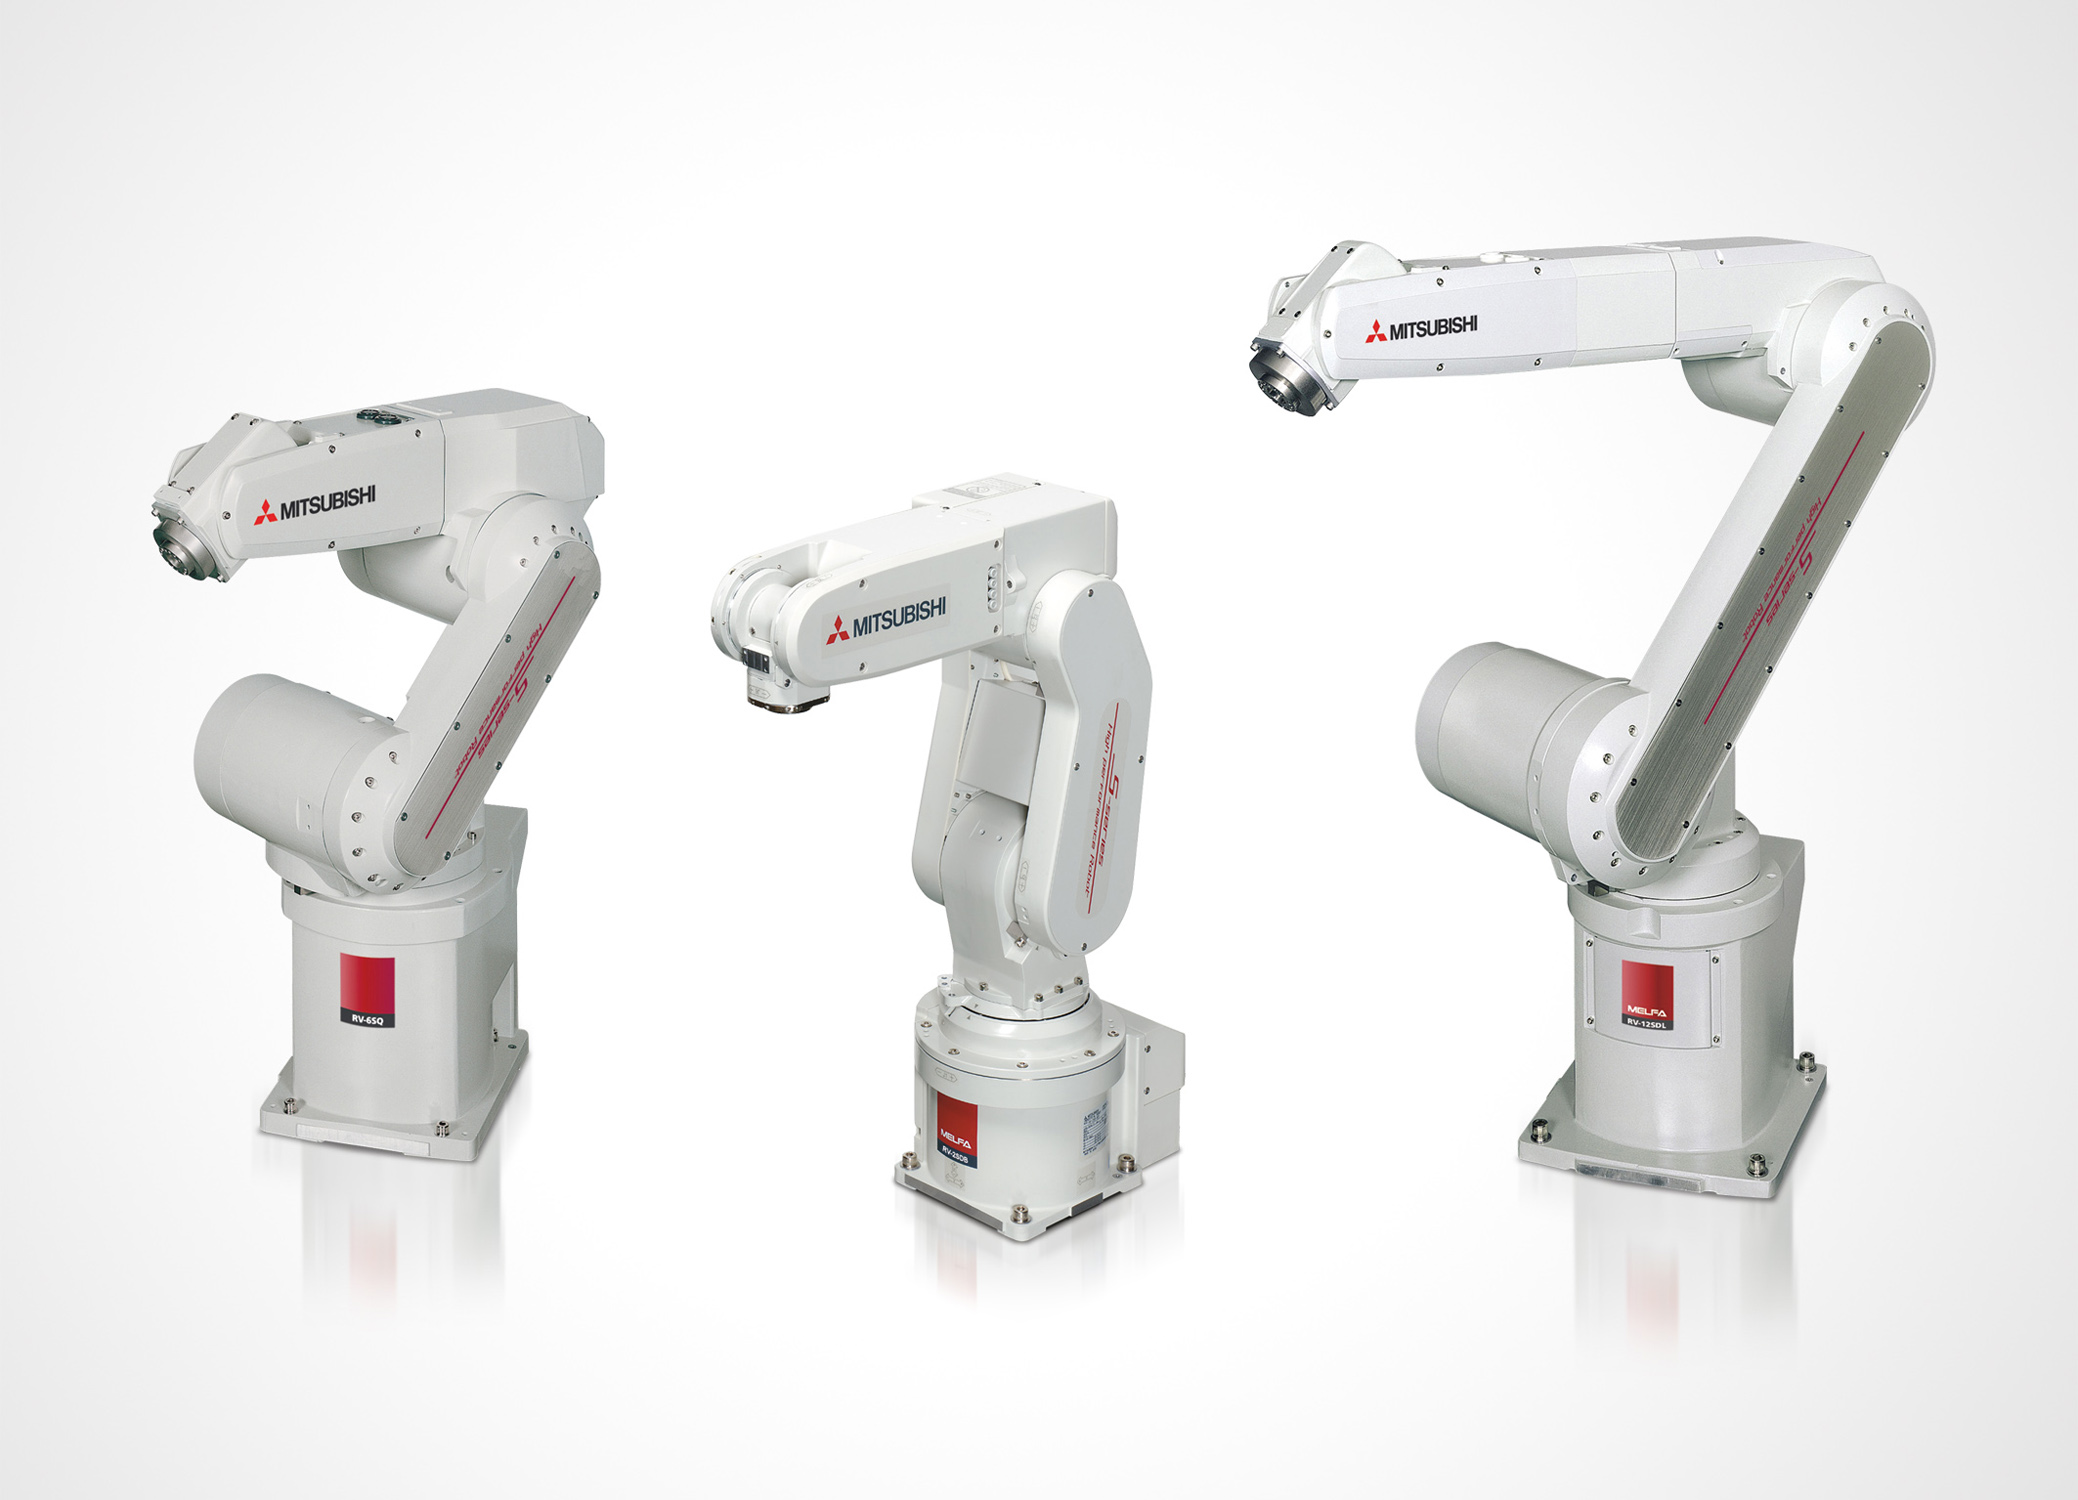 Mitsubishi Says It Has 70 000 Industrial Robots Installed